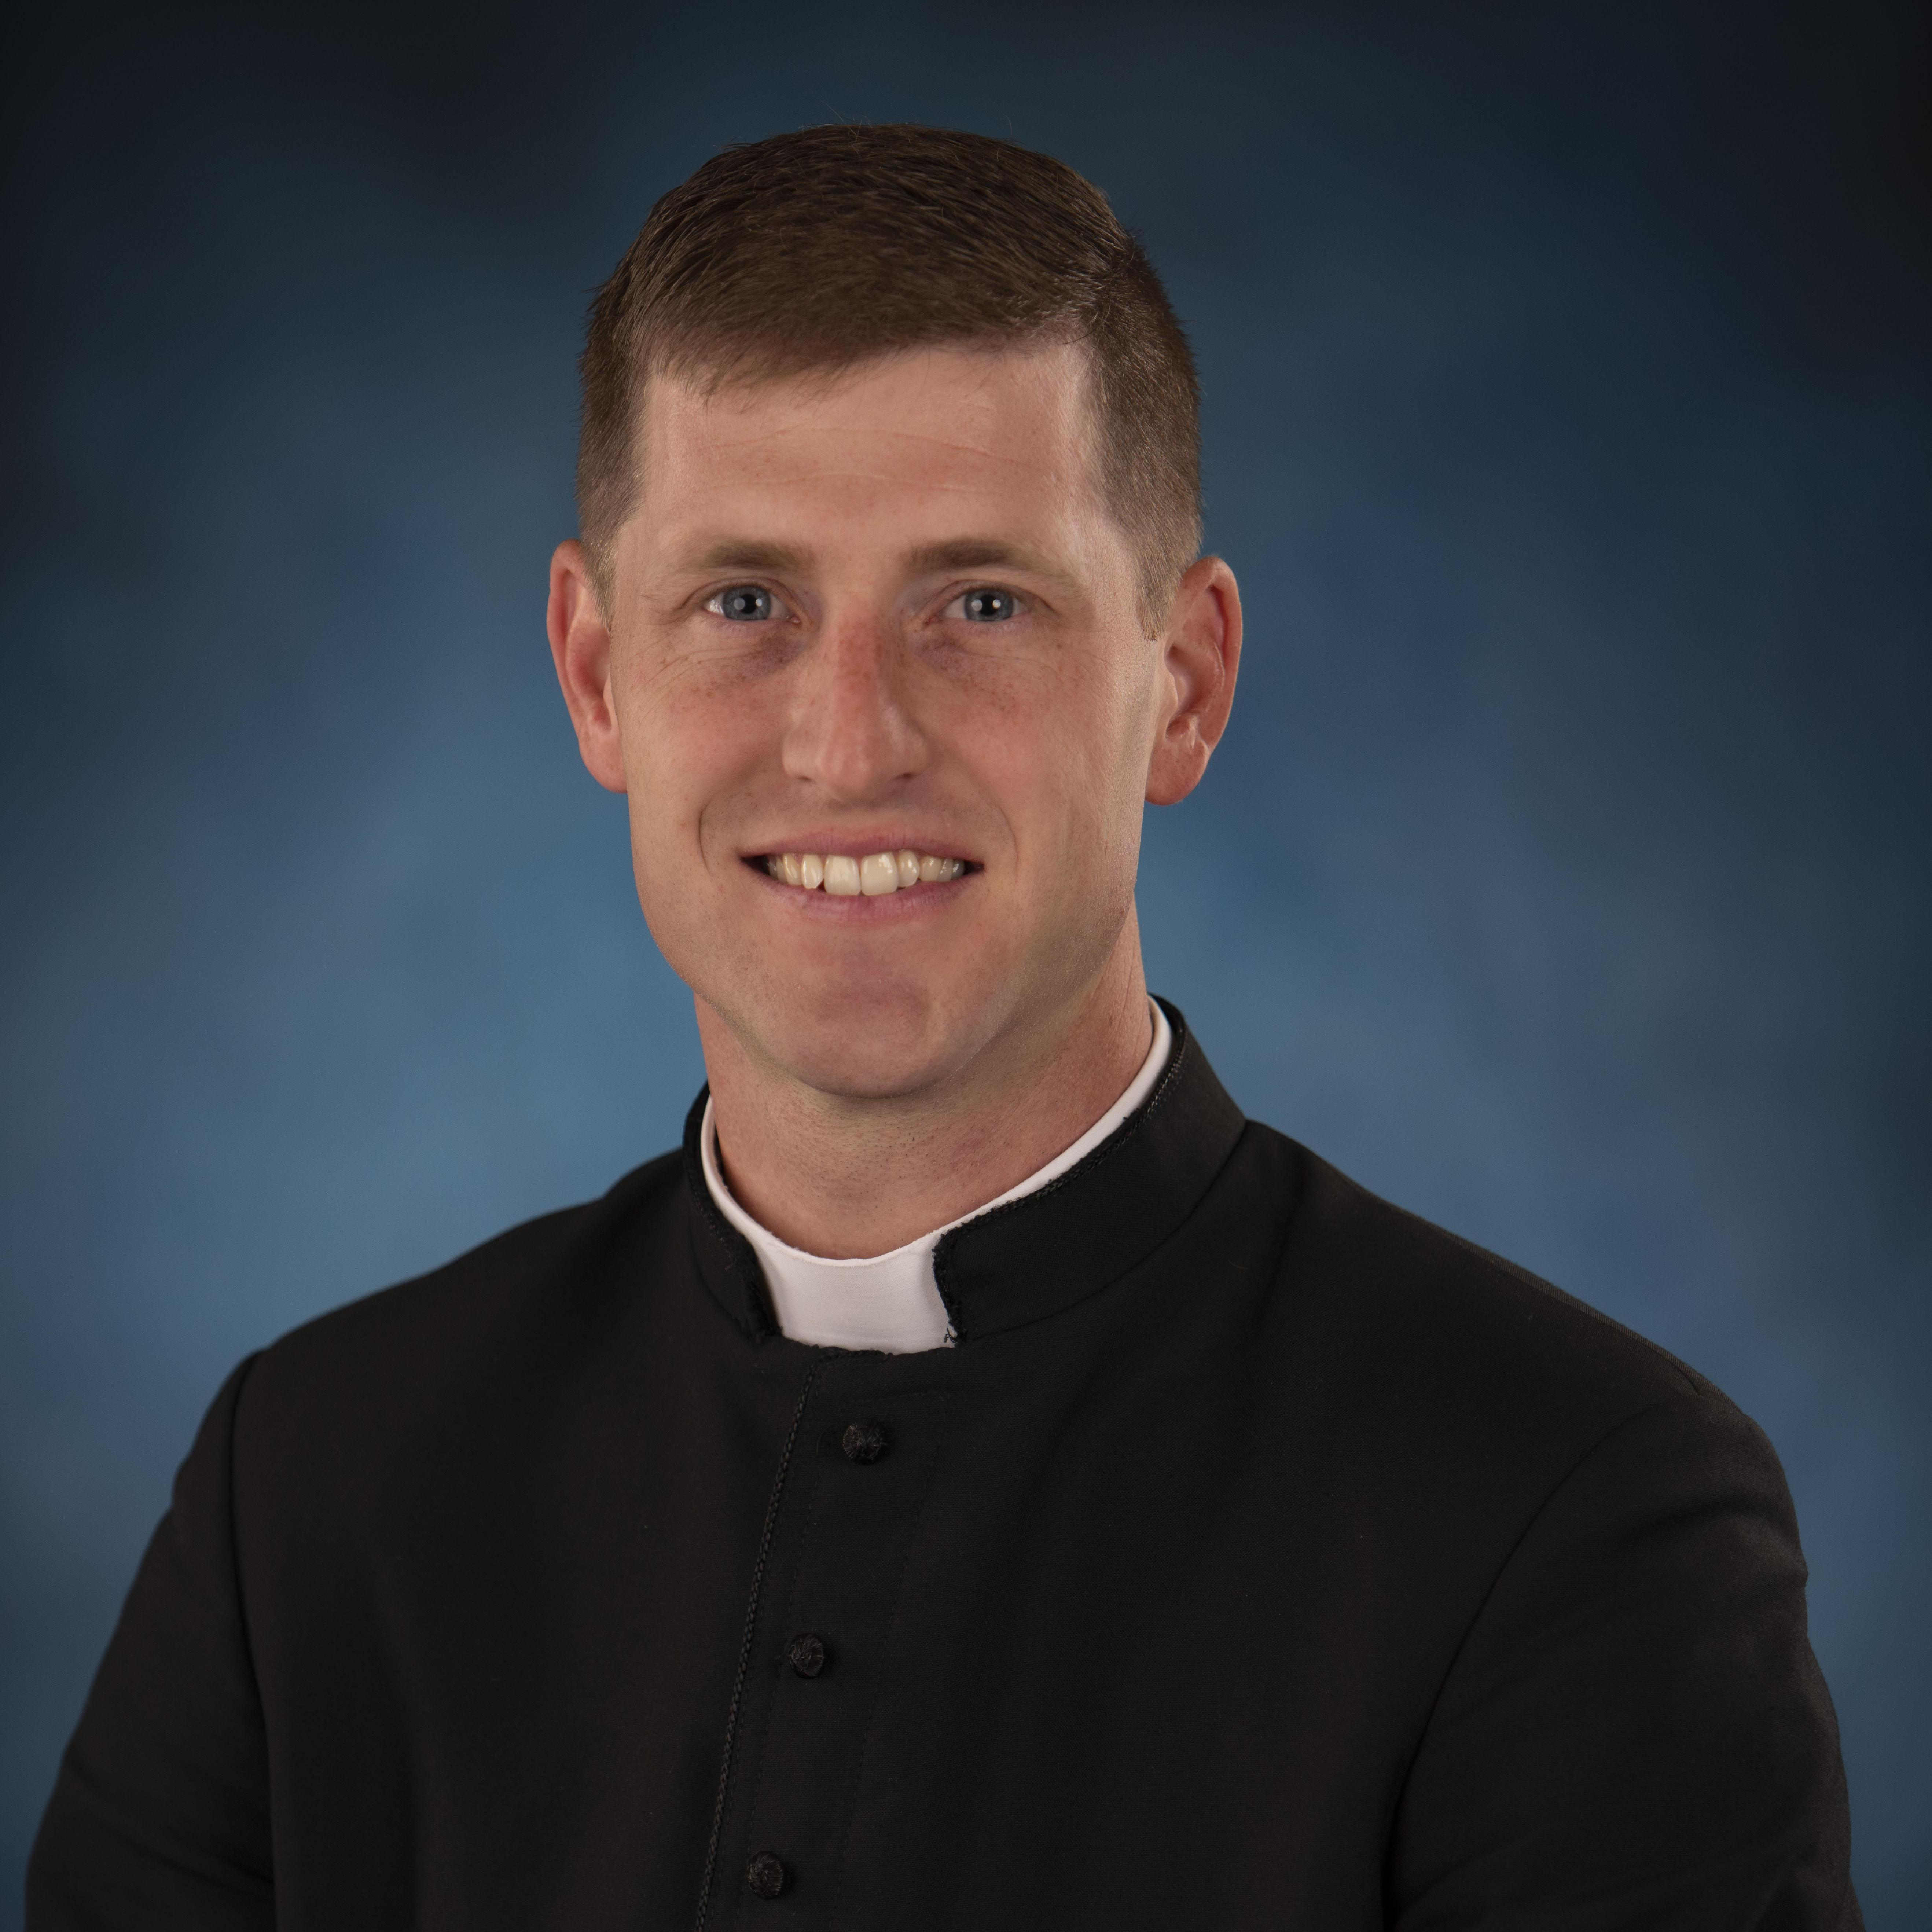 Fr. Andrew Bergkamp's Profile Photo